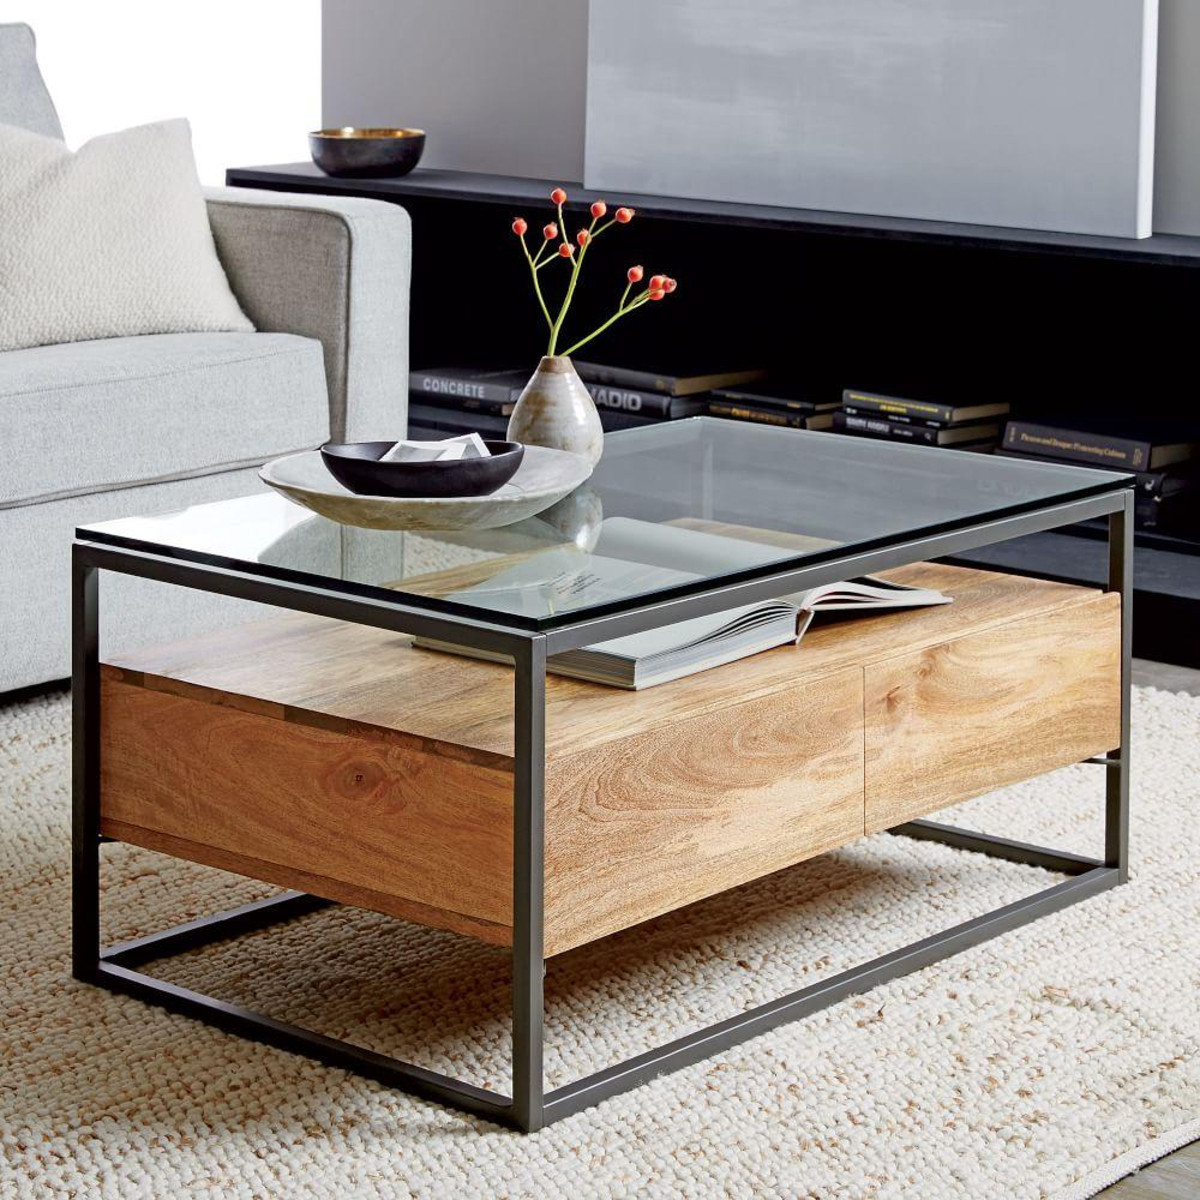 Best ideas about Coffee Table With Storage . Save or Pin Box Frame Storage Coffee Table Now.